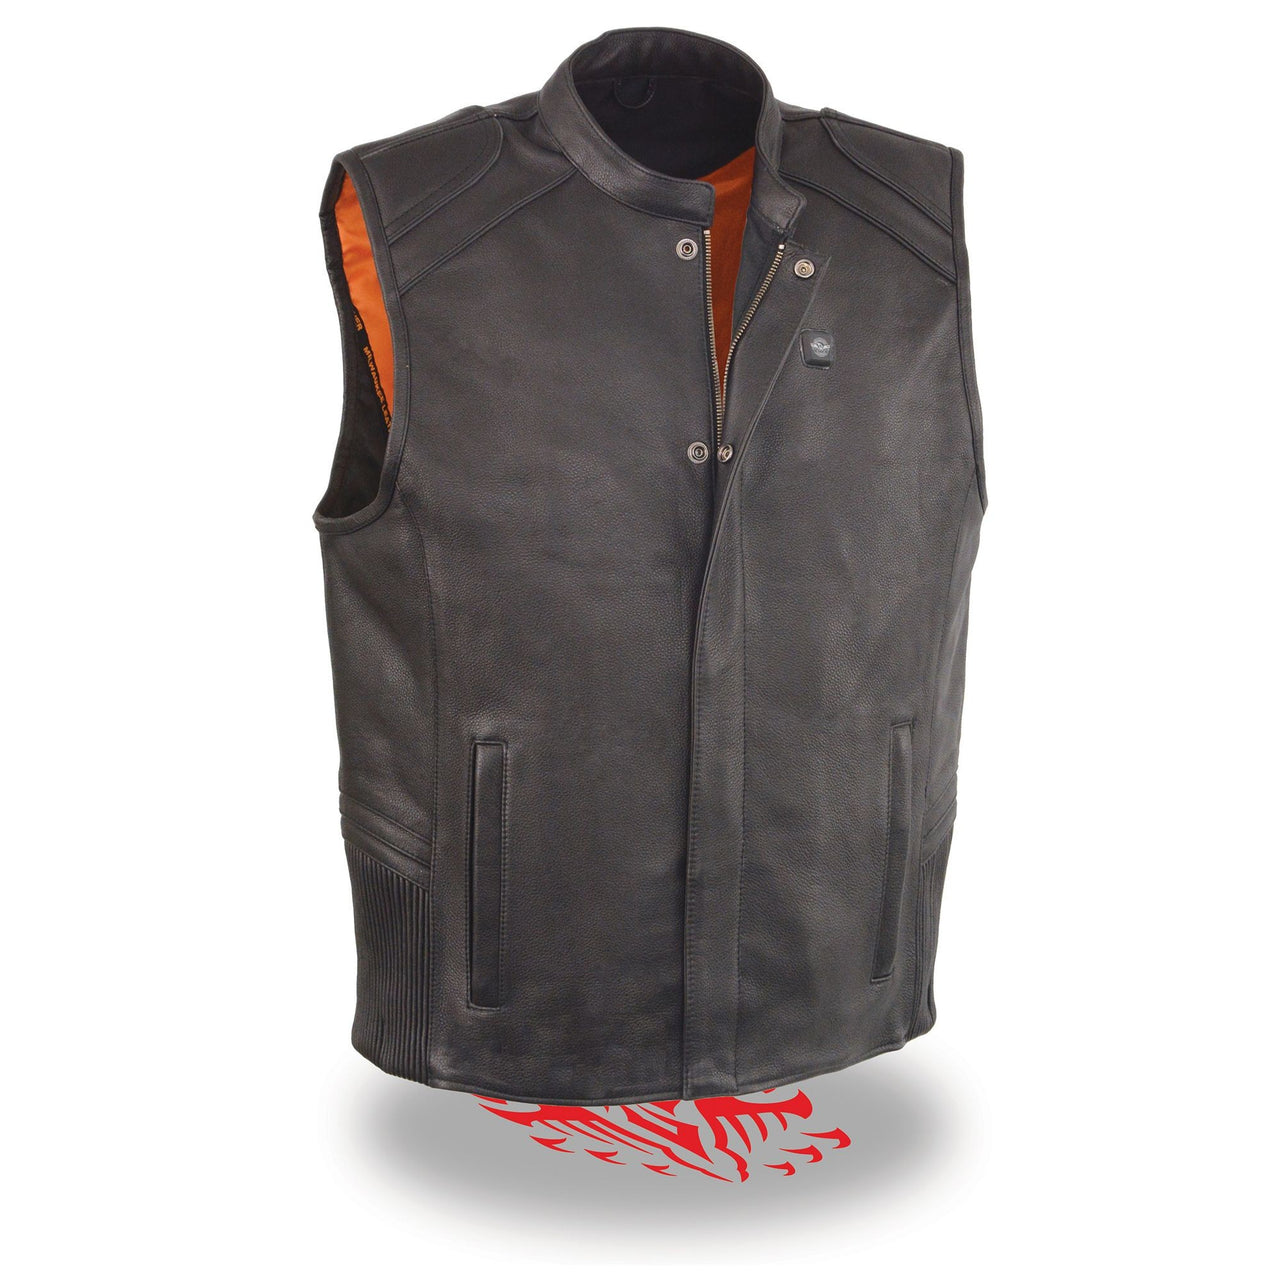 Men's Zipper Front Vest w/ Heated Technology - HighwayLeather